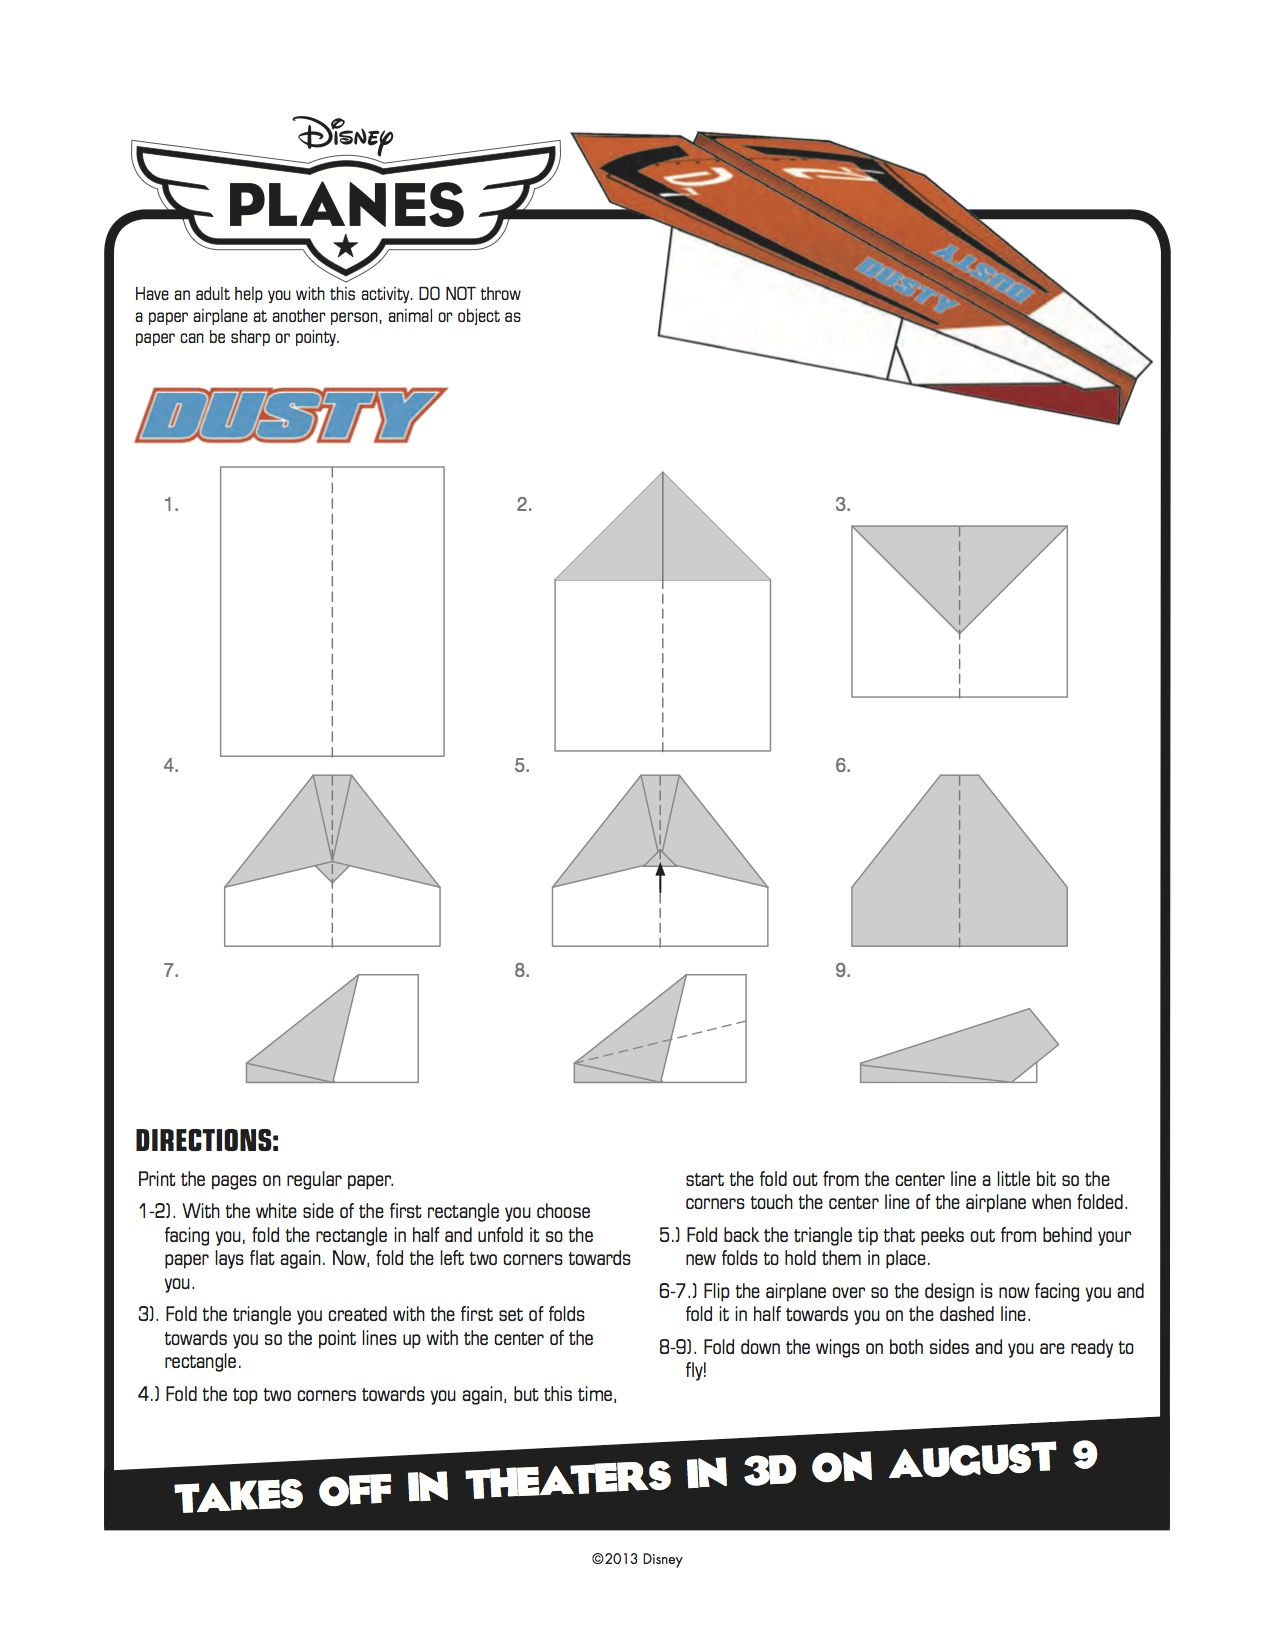 Disney Planes Printable Dusty Paper Airplane Craft With